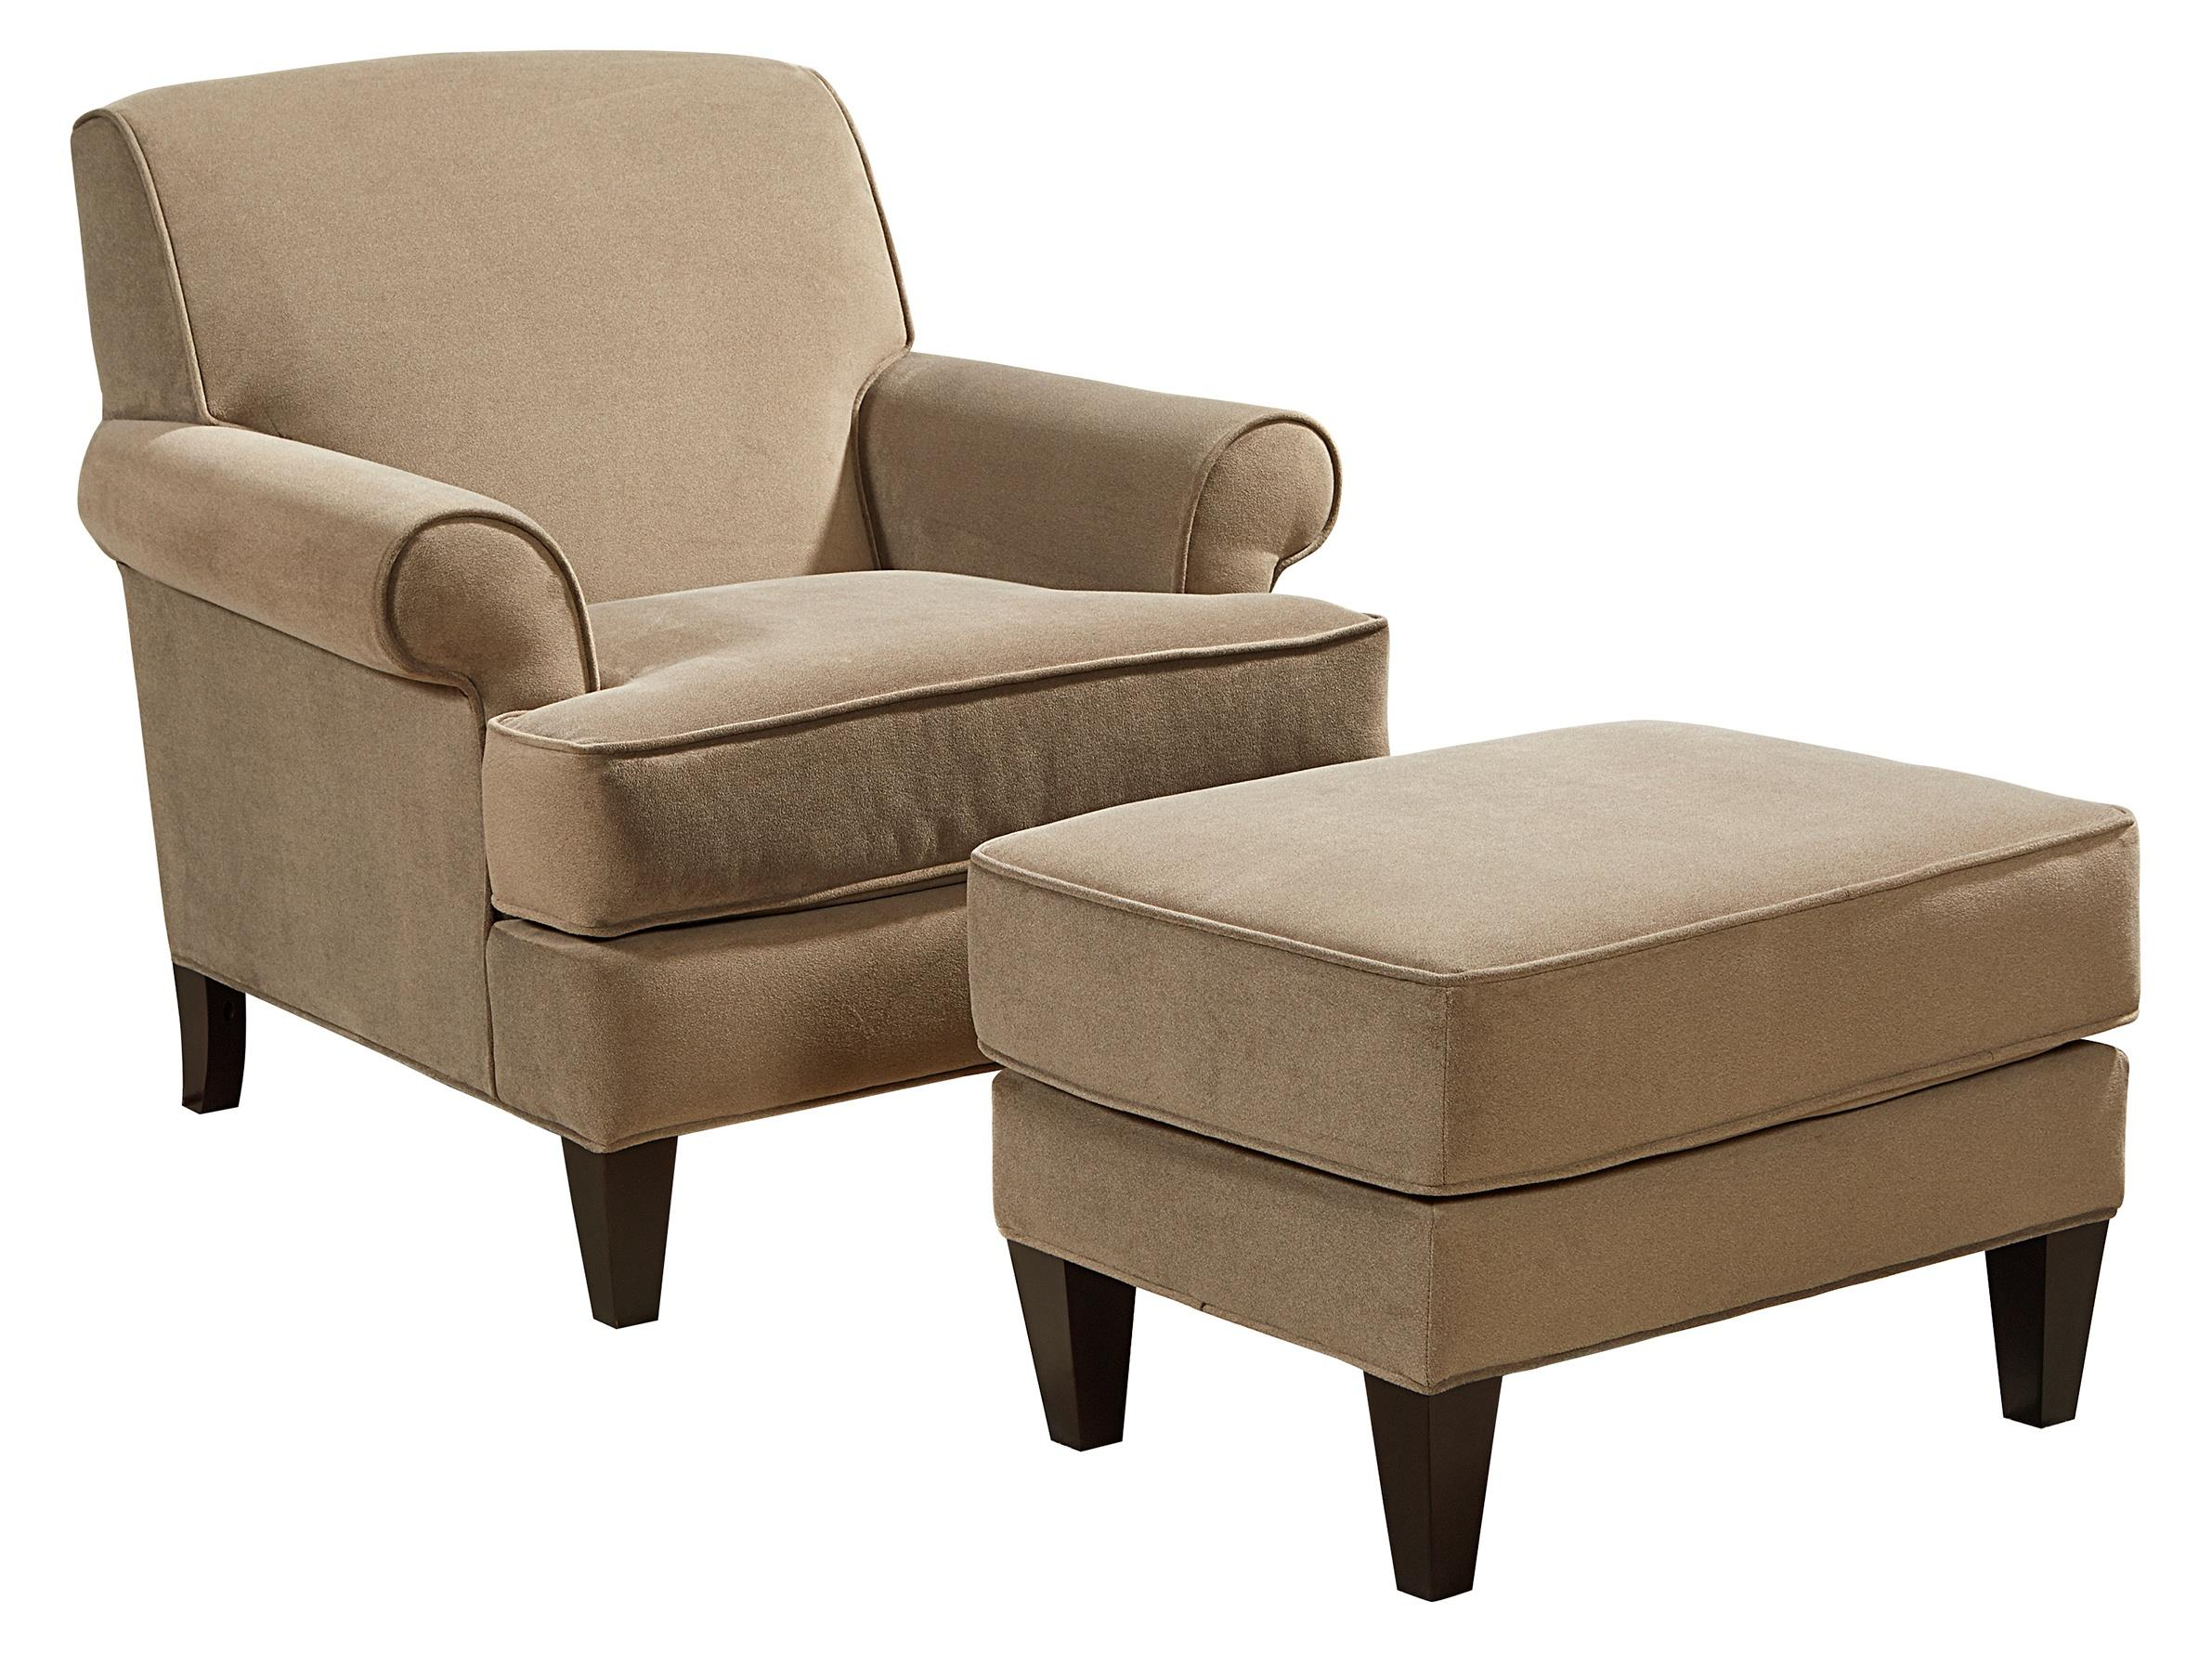 Broyhill Furniture Flint Chair and Ottoman Set - Item Number: 4252-0+5-4238-83